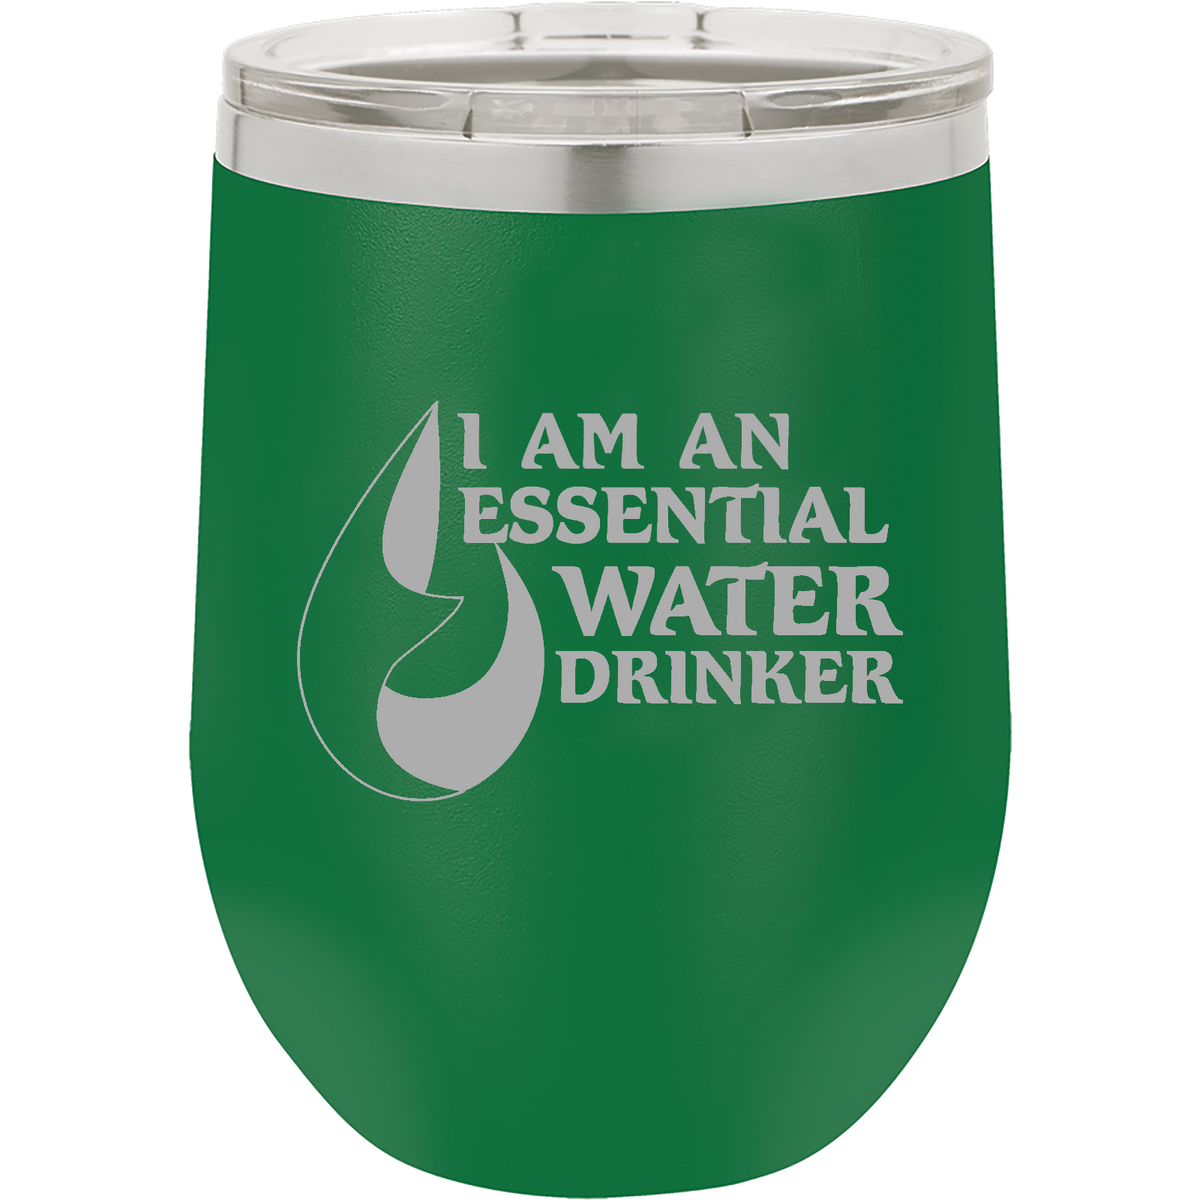 I'm an essential water drinker - 12oz. Engraved Stemless Wine Tumbler with Clear Lid